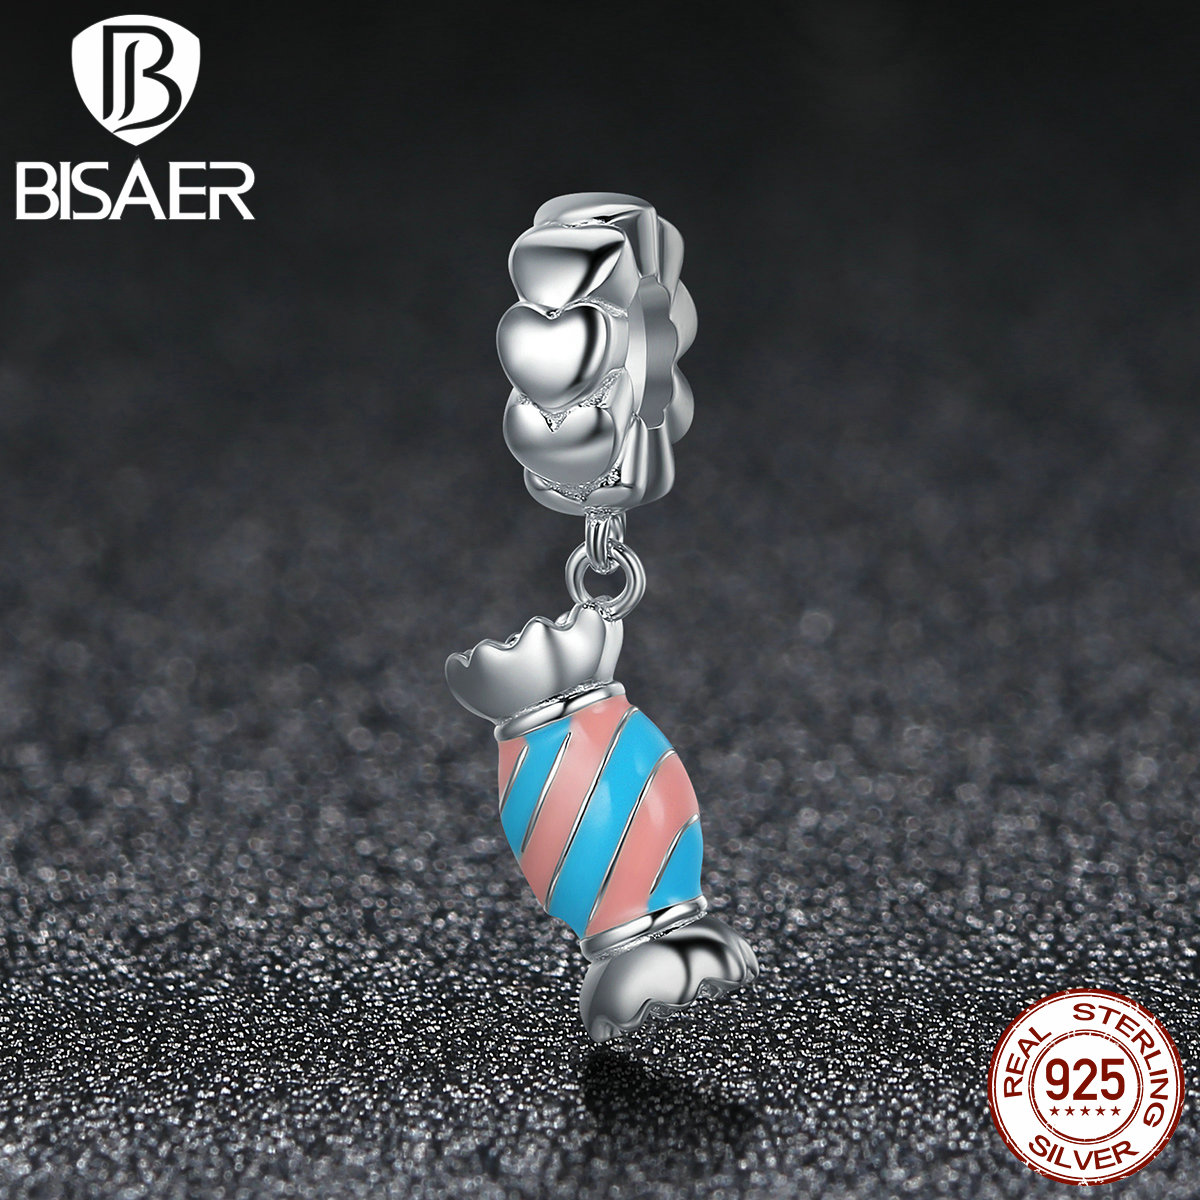 BISAER 100% 925 Sterling Silver Sweety Candy, Colorful Enamel Beads Charms Fit Authentic Original Pan Bracelets HSC348